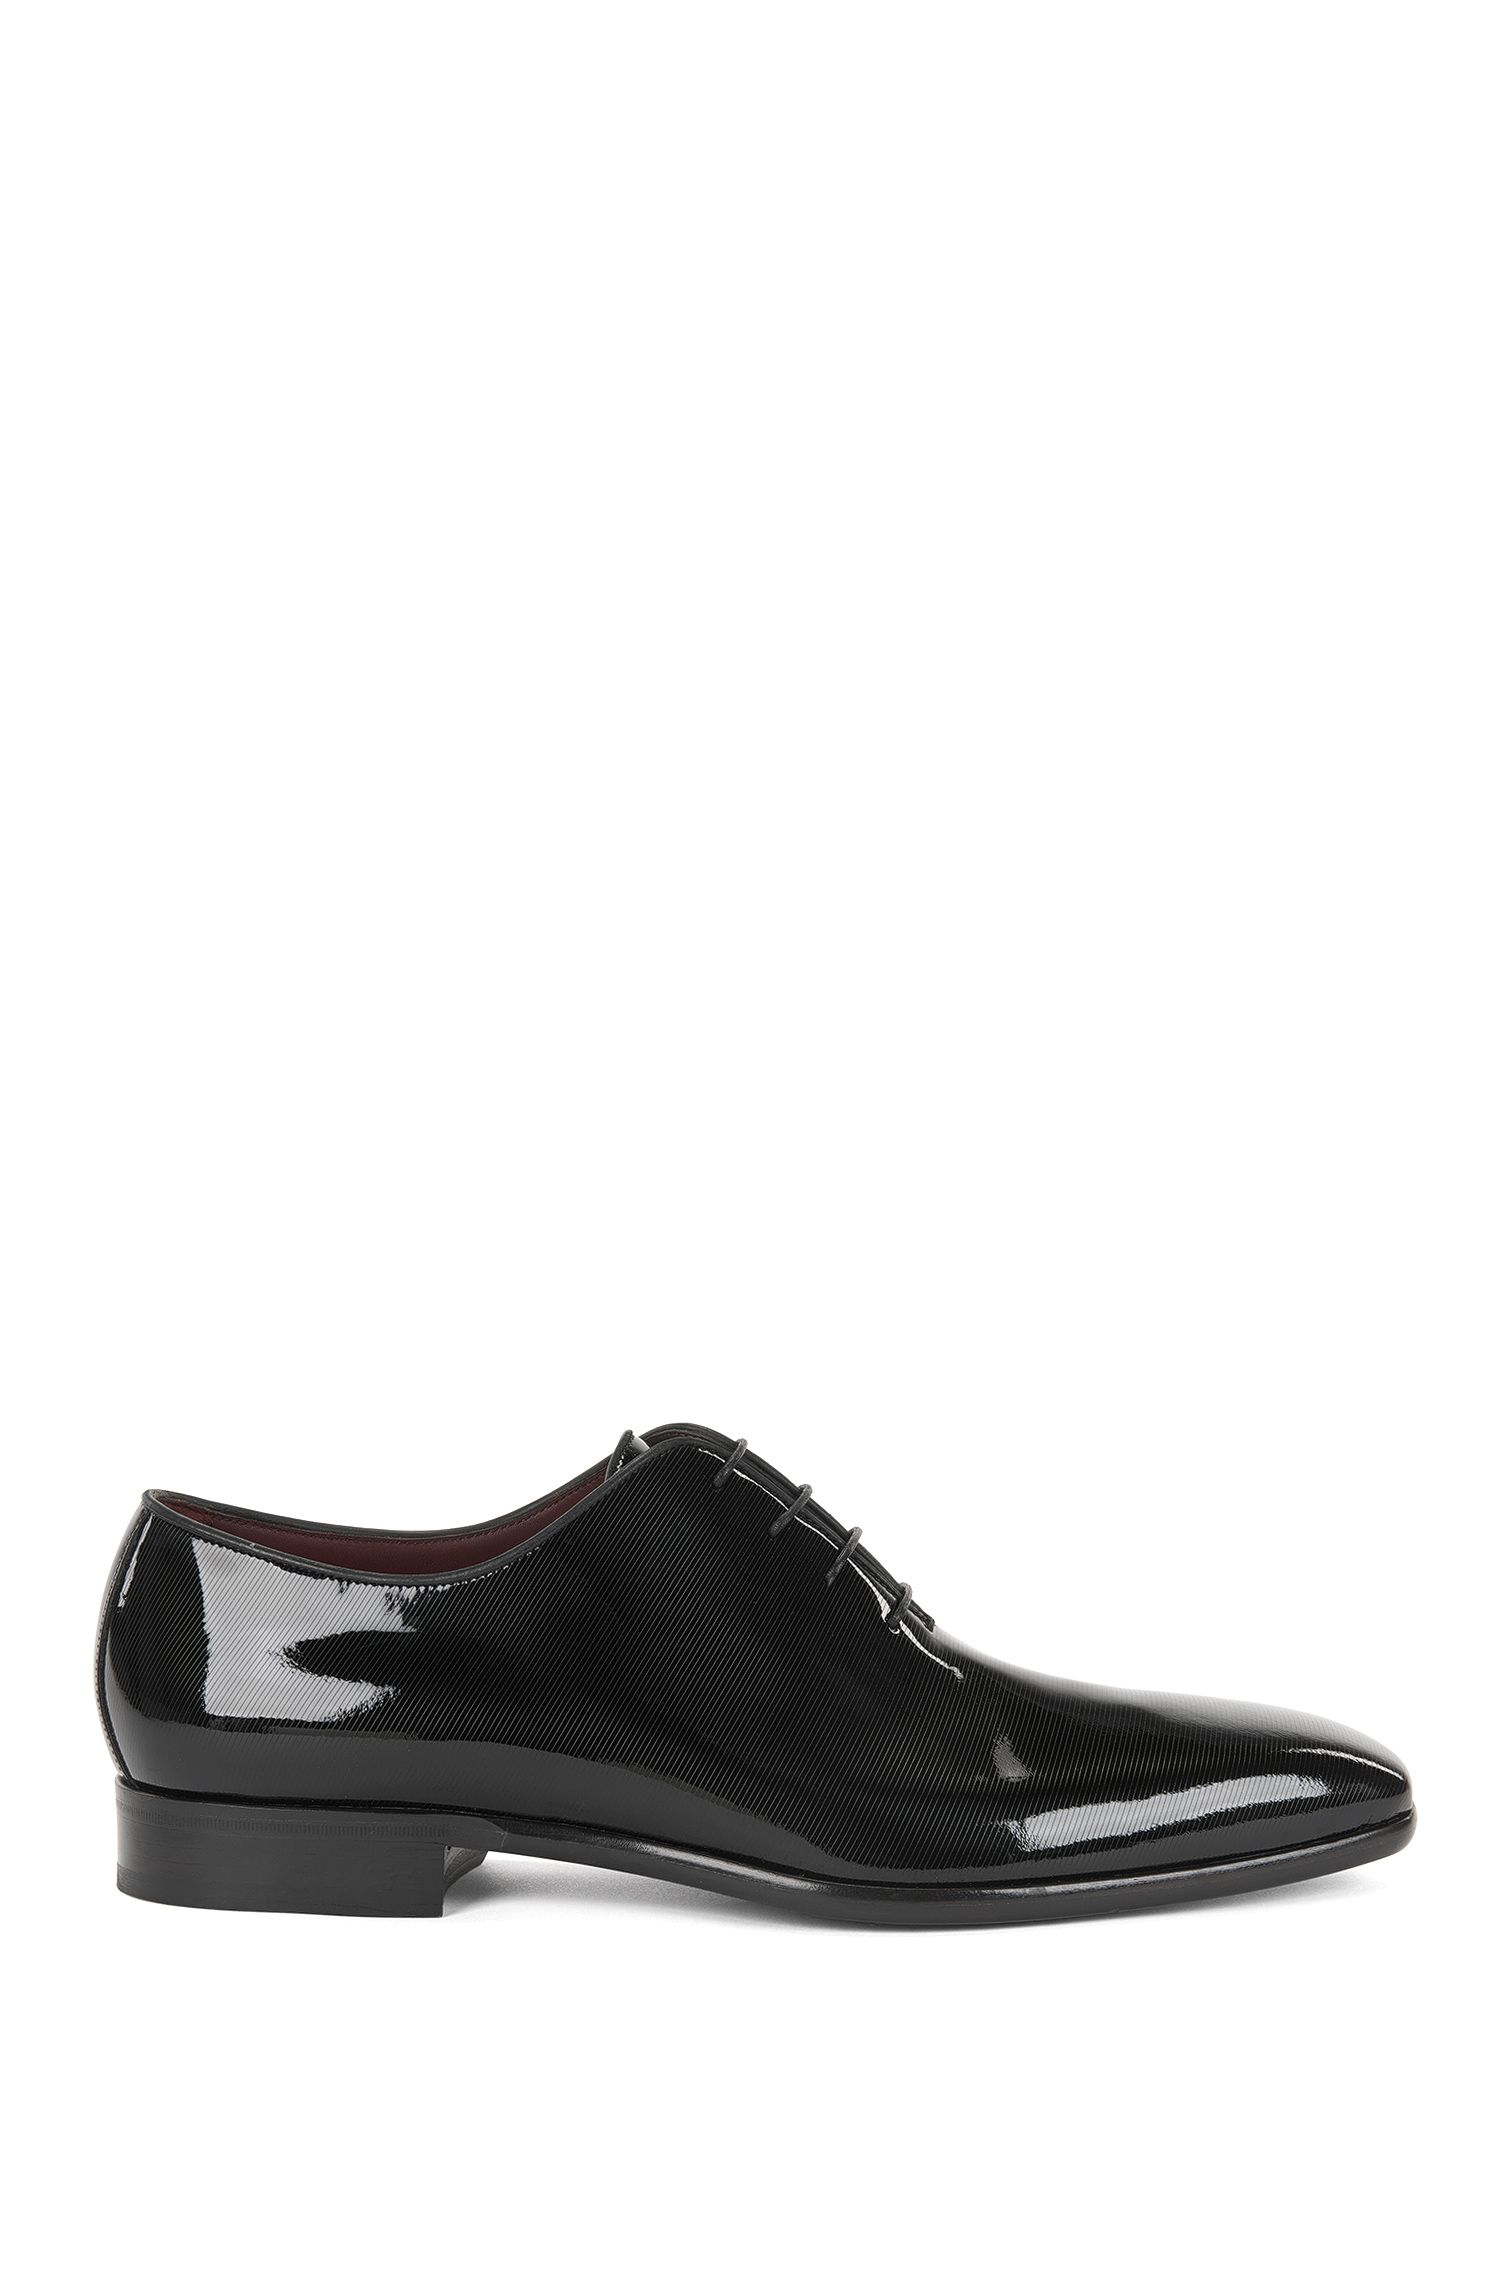 Patent Leather Oxford Shoe | T-Club Oxfr Pals